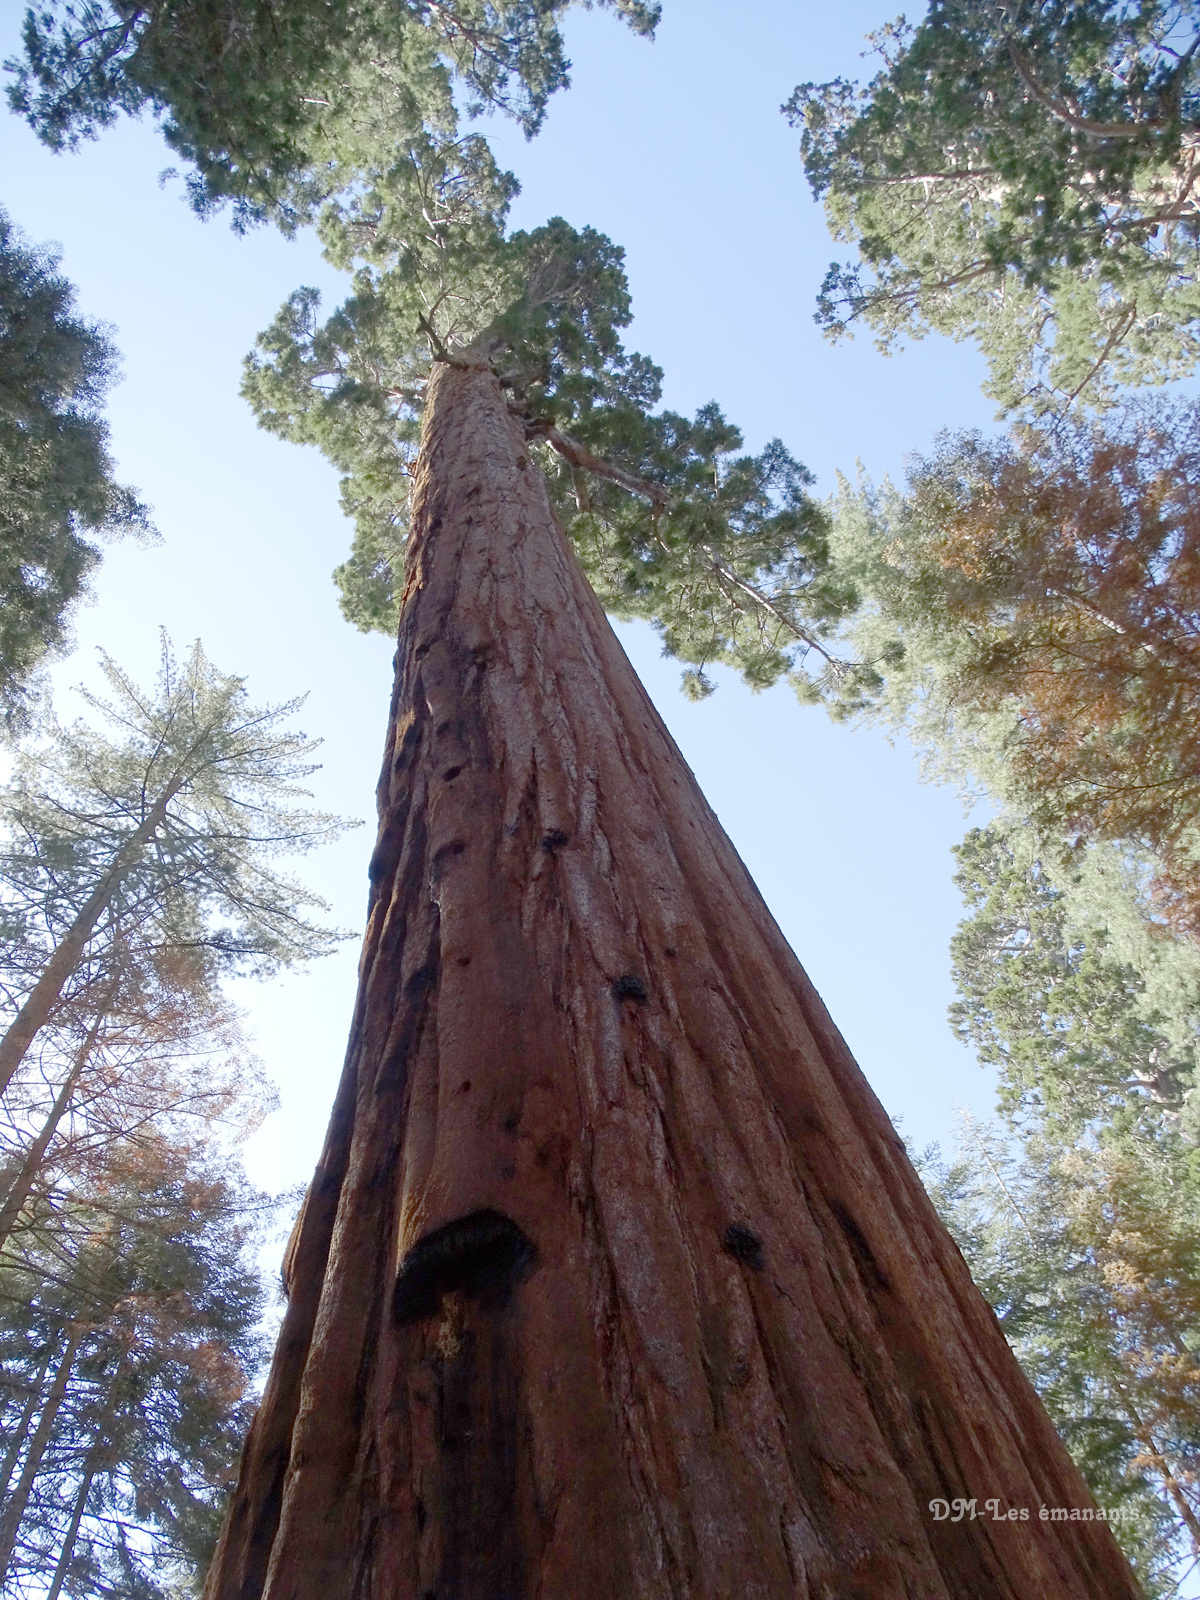 les géants de californie : les sequoias - zone paranormal